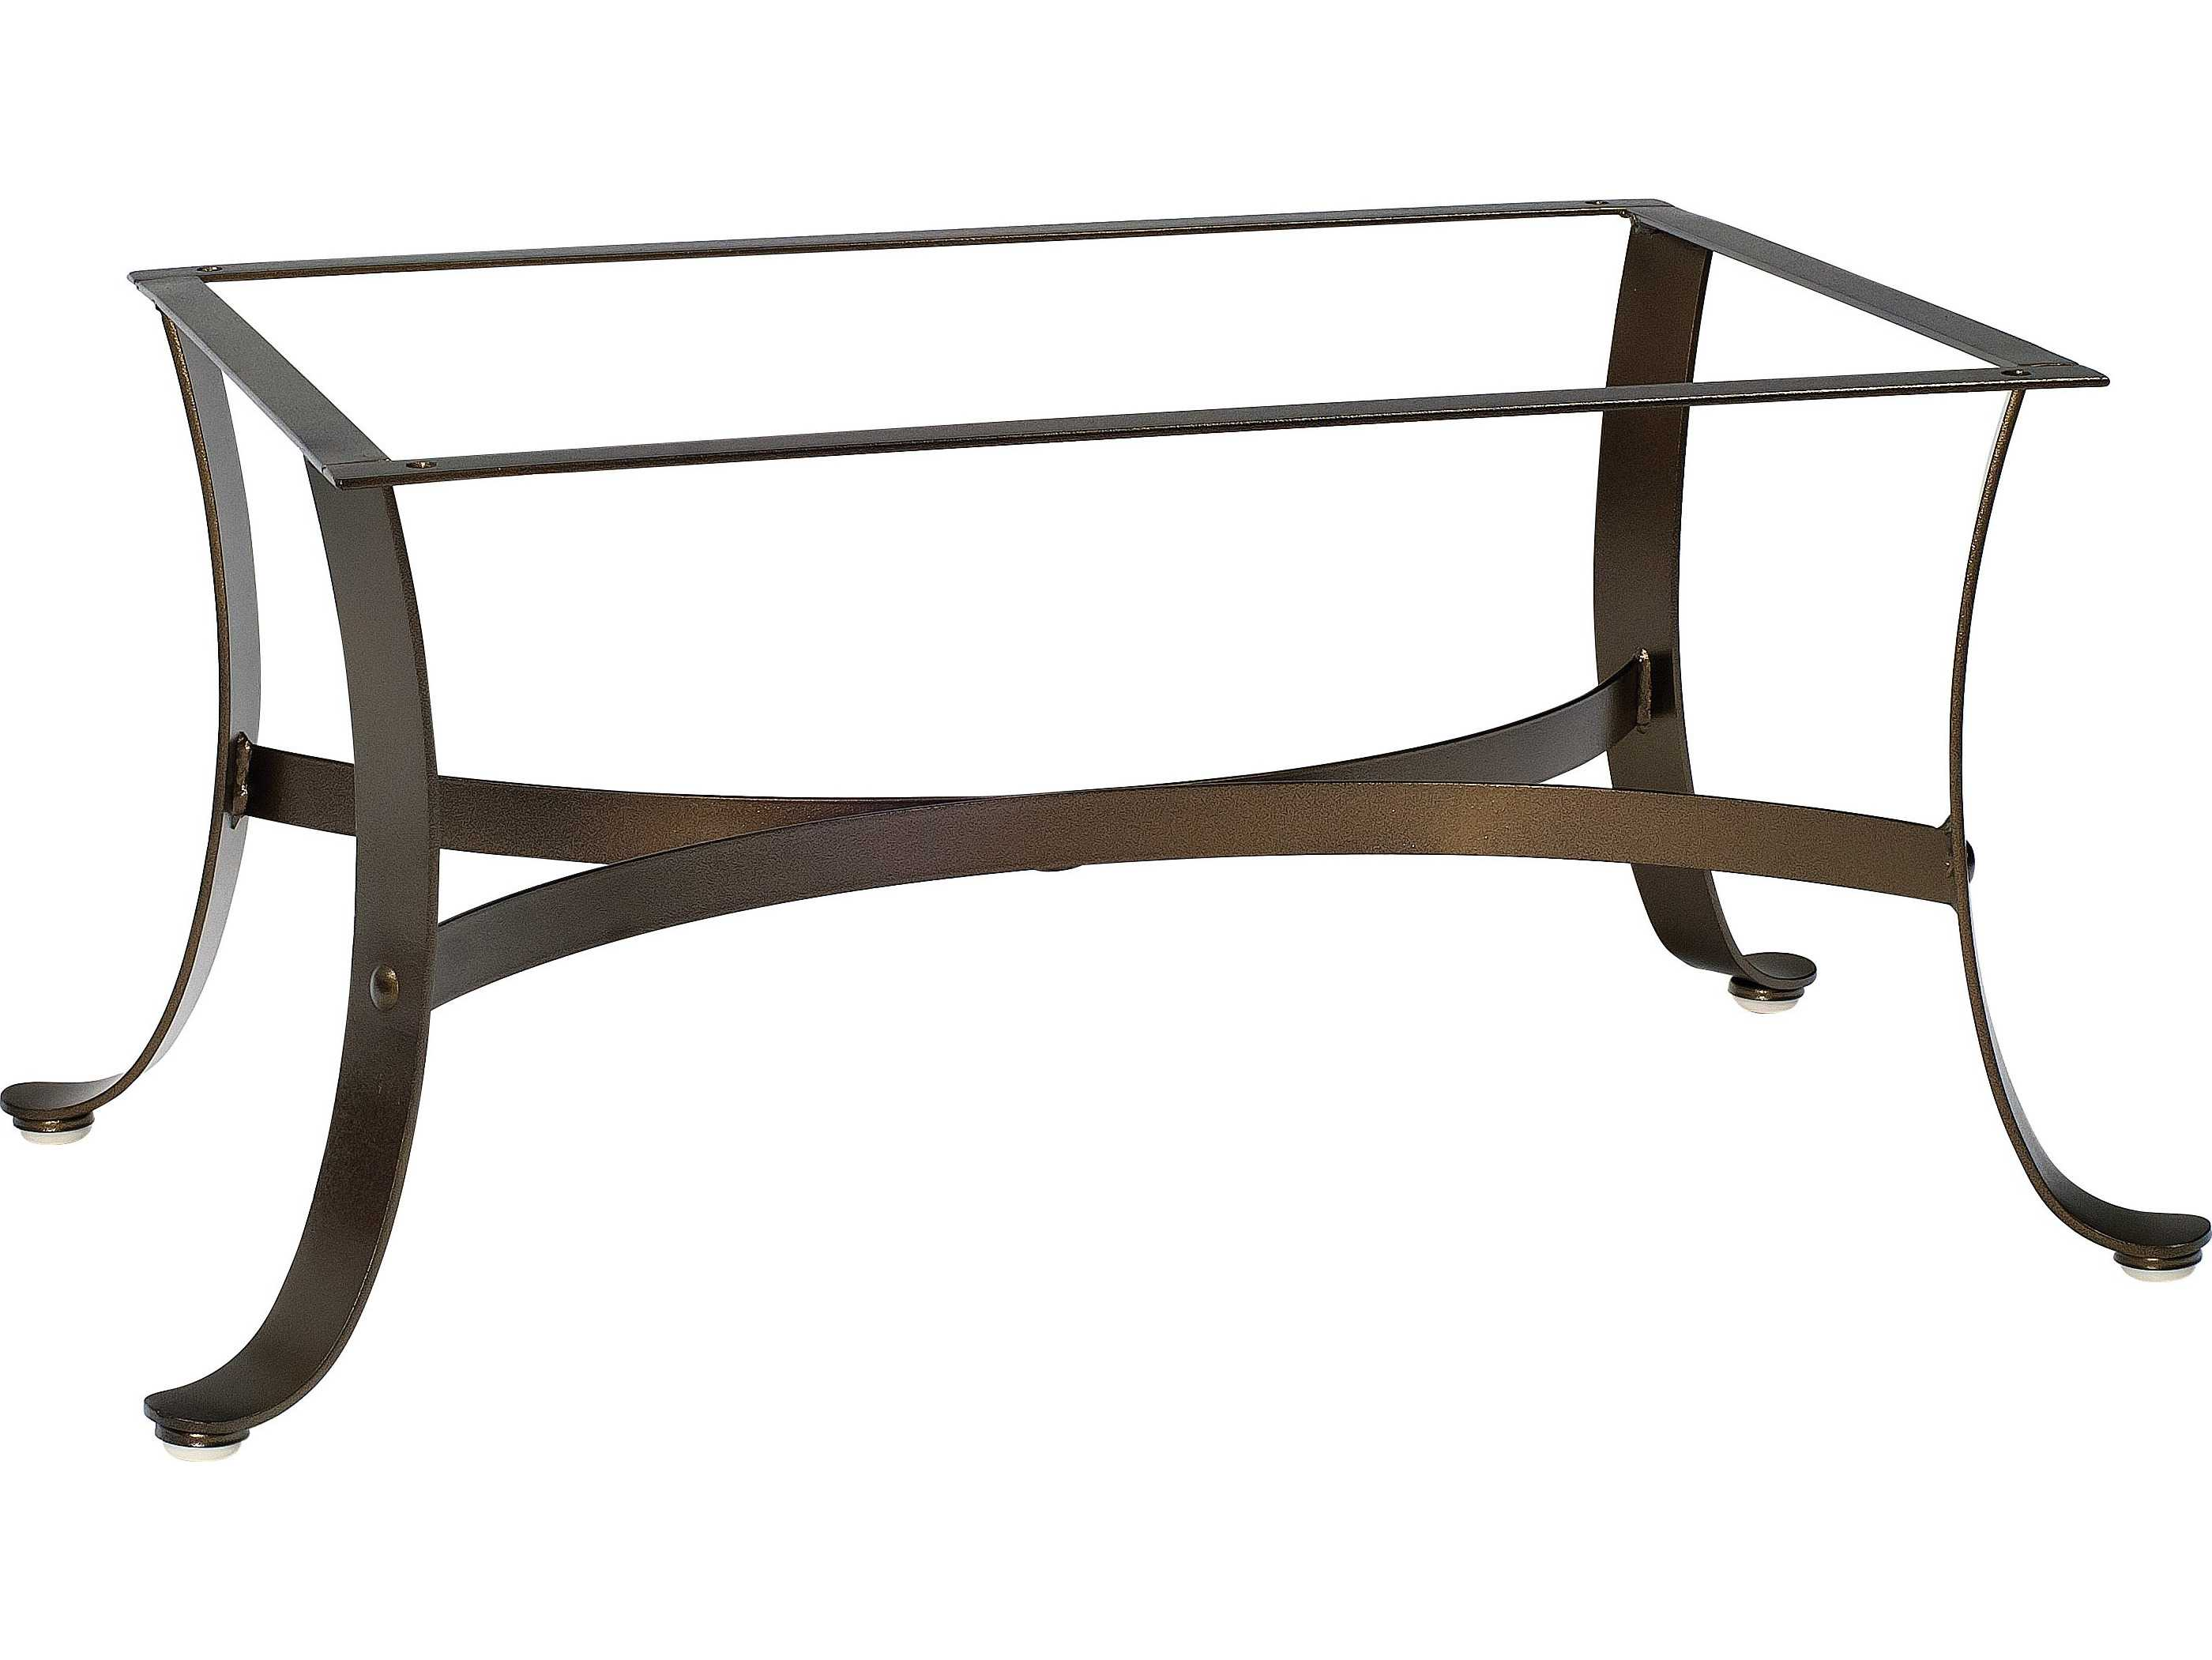 Woodard cascade wrought iron coffee table base 2w4400 Bases for coffee tables